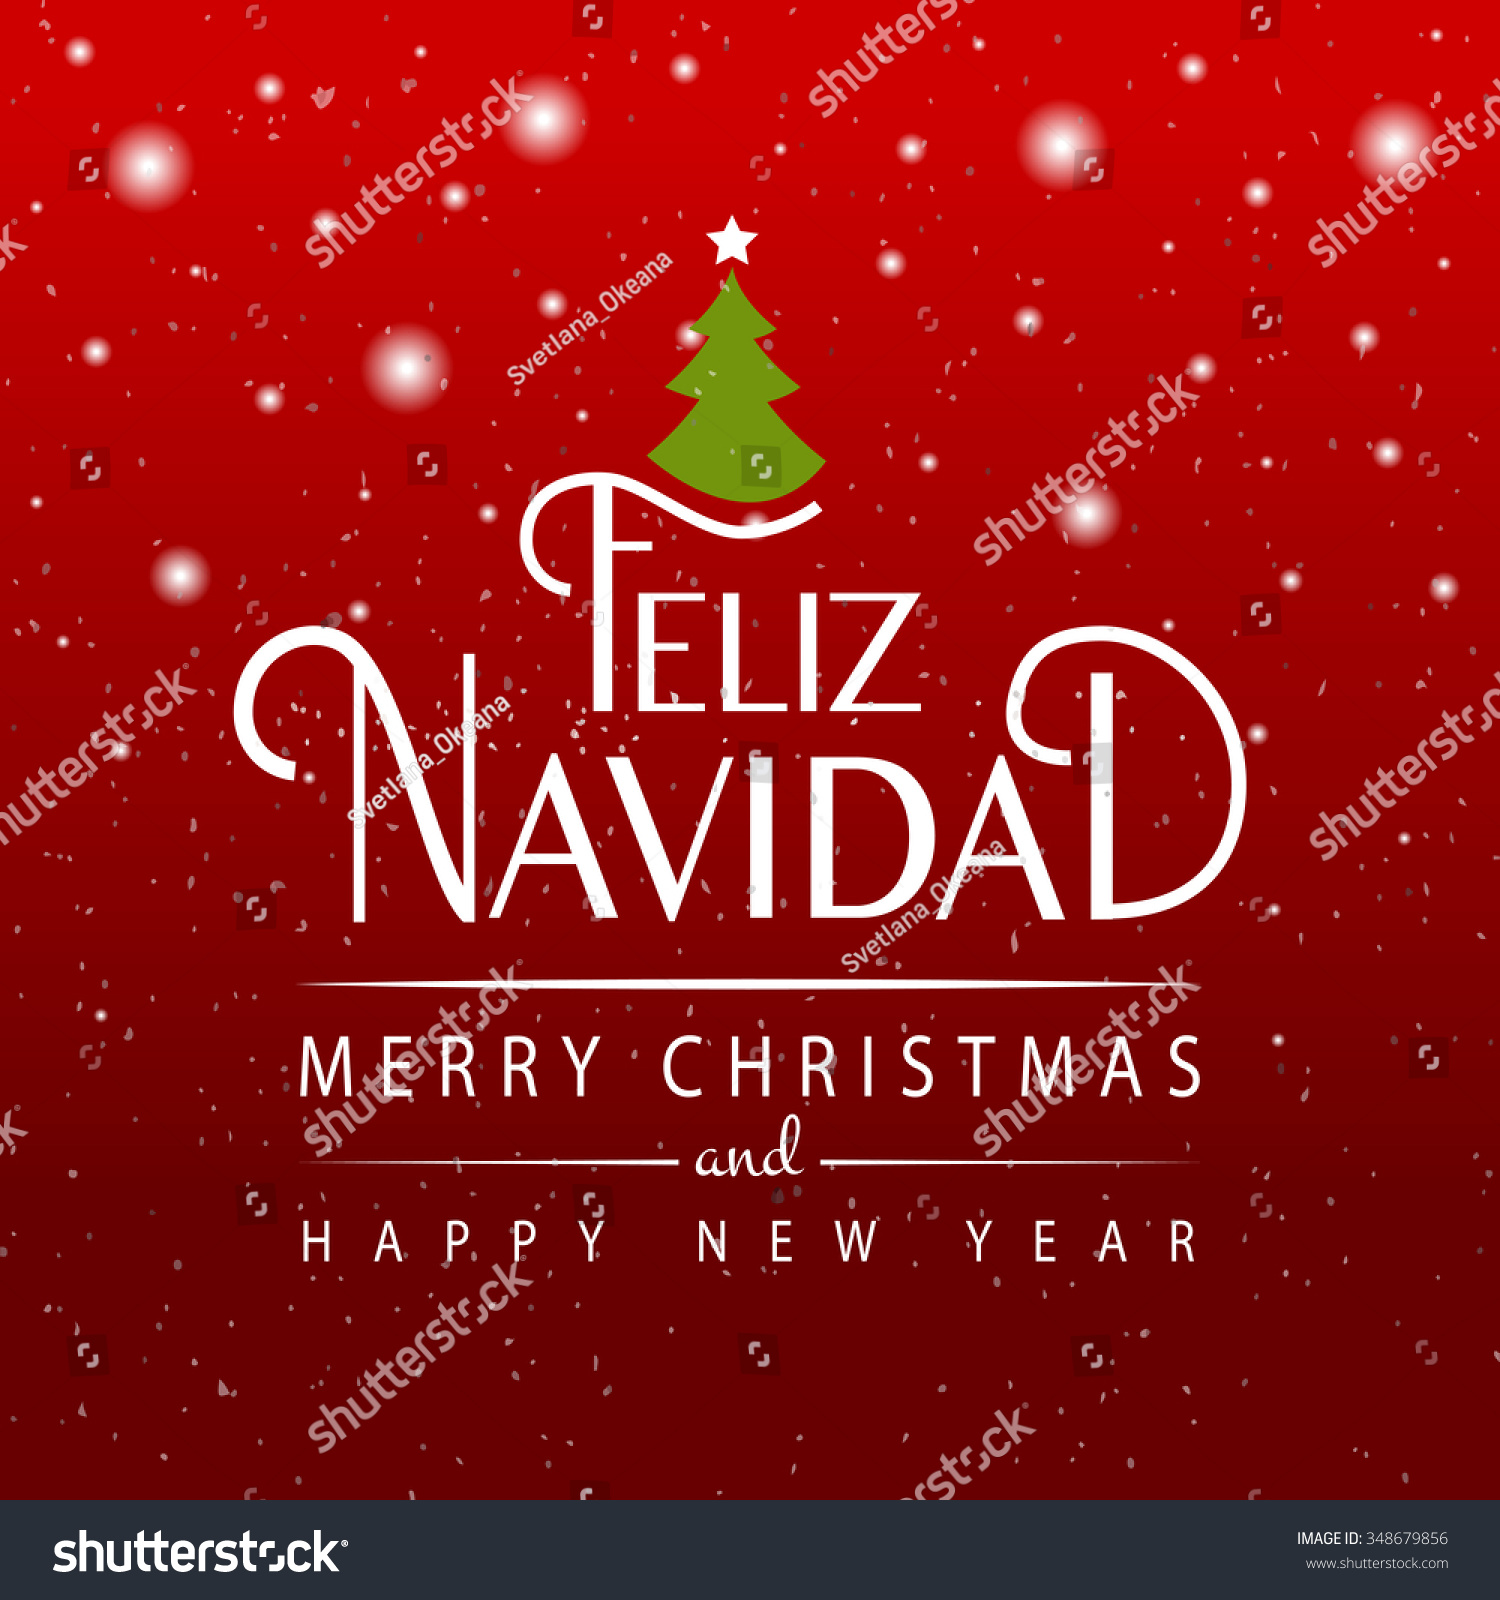 Hand sketched feliz navidad merry christmas stock vector 348679856 hand sketched feliz navidad merry christmas in spanish for happy holidays greeting card kristyandbryce Images